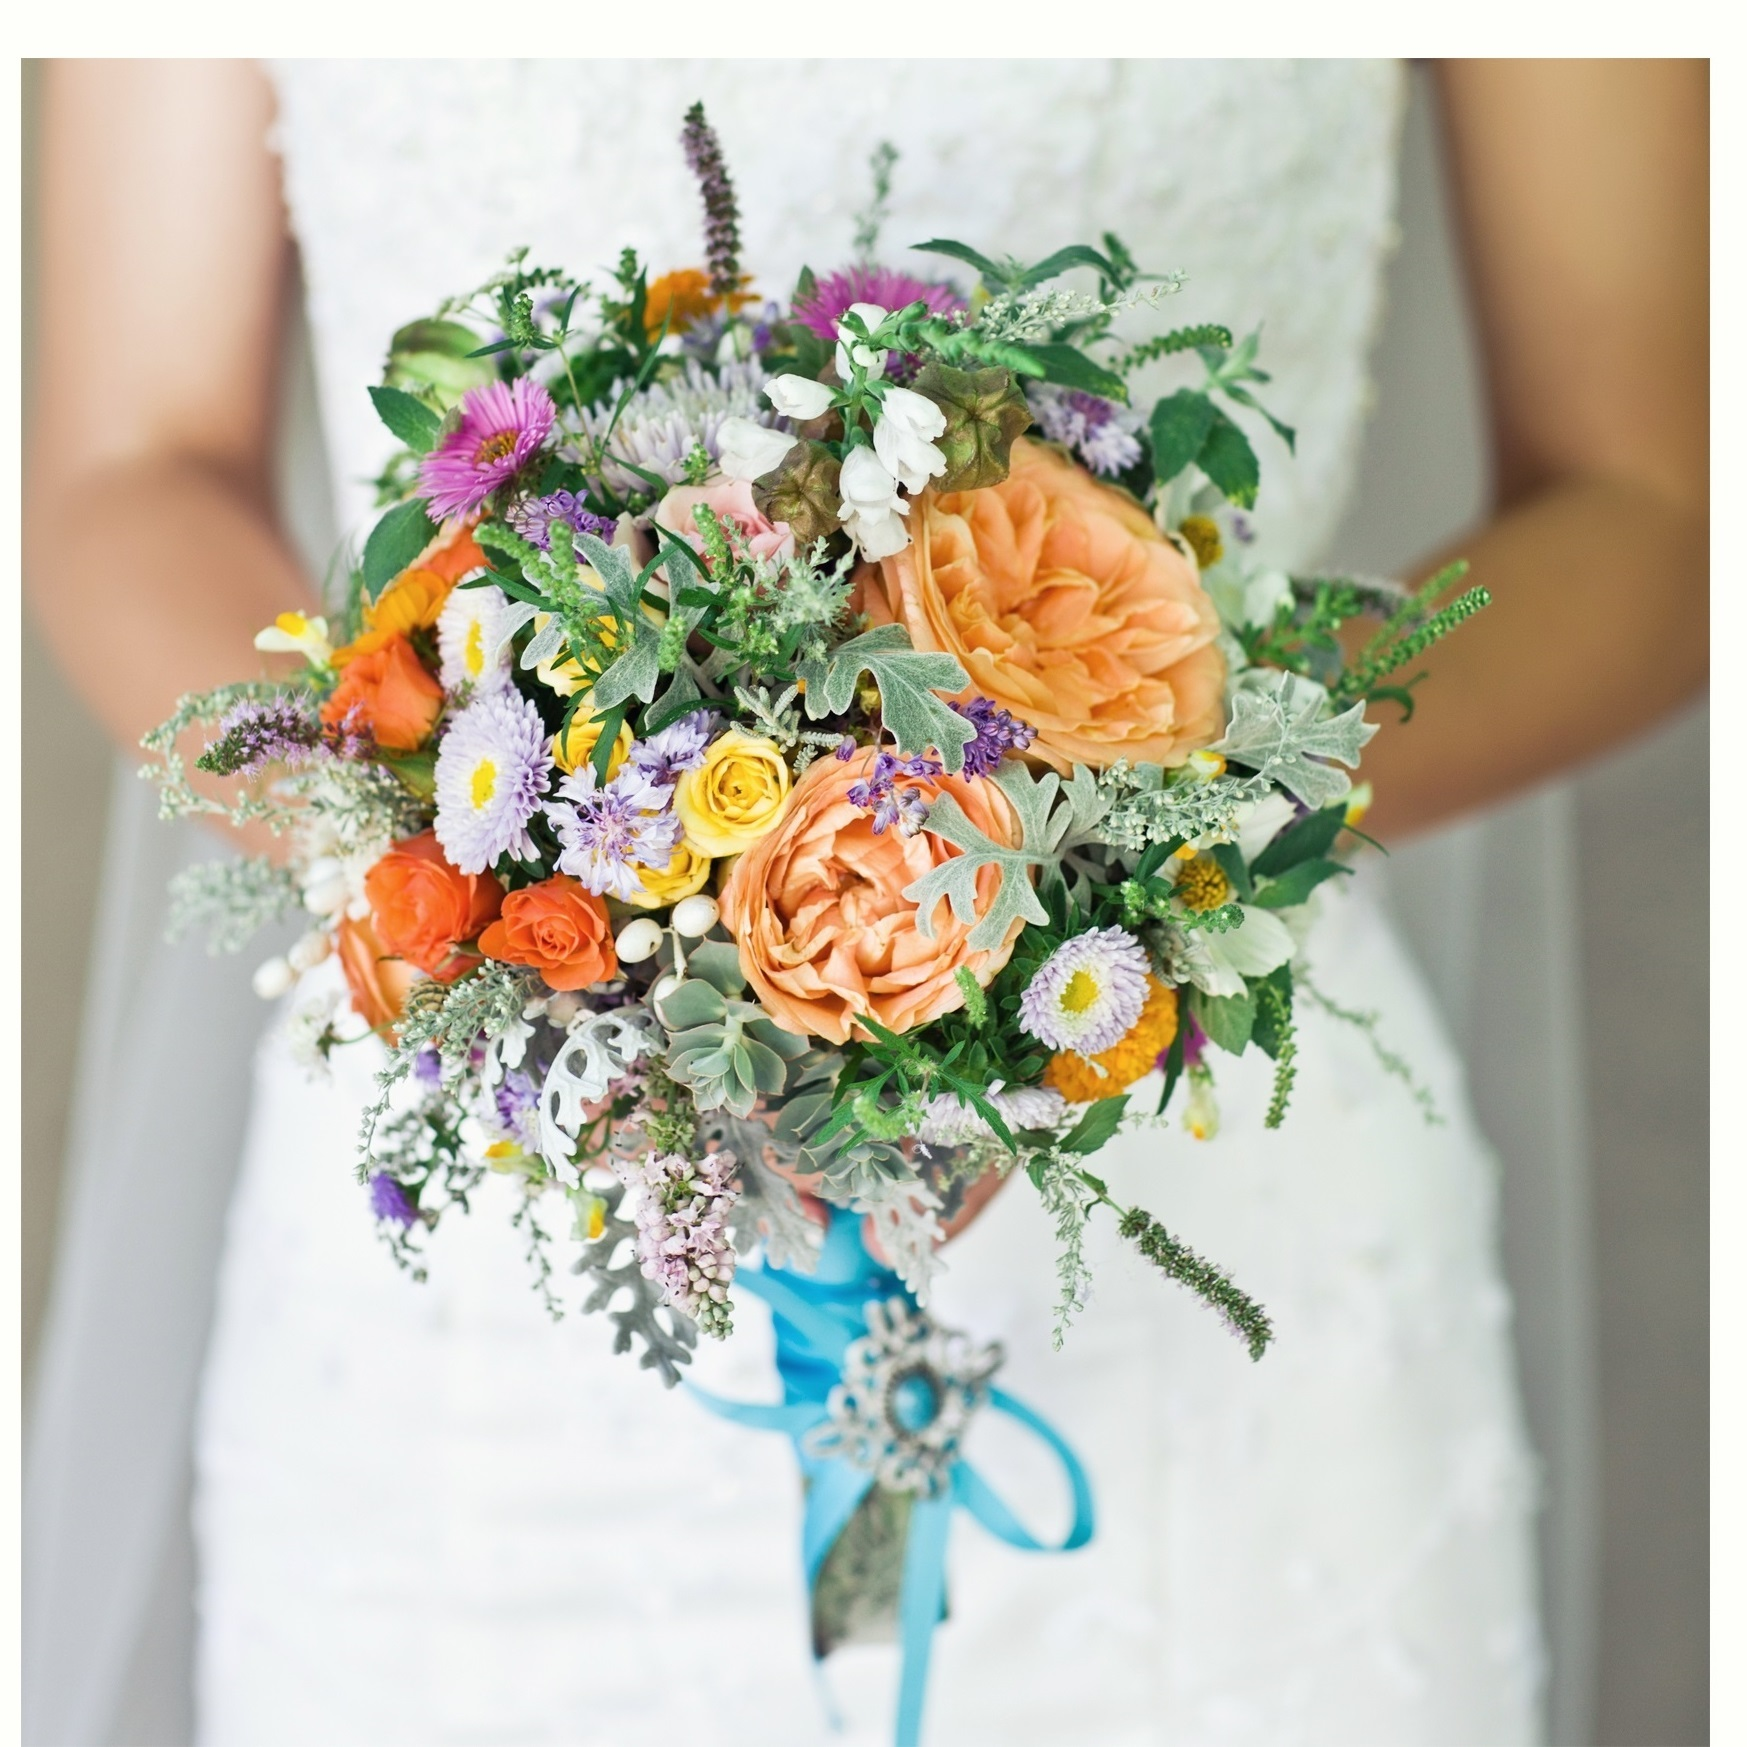 What Wedding Flowers Do I Need?